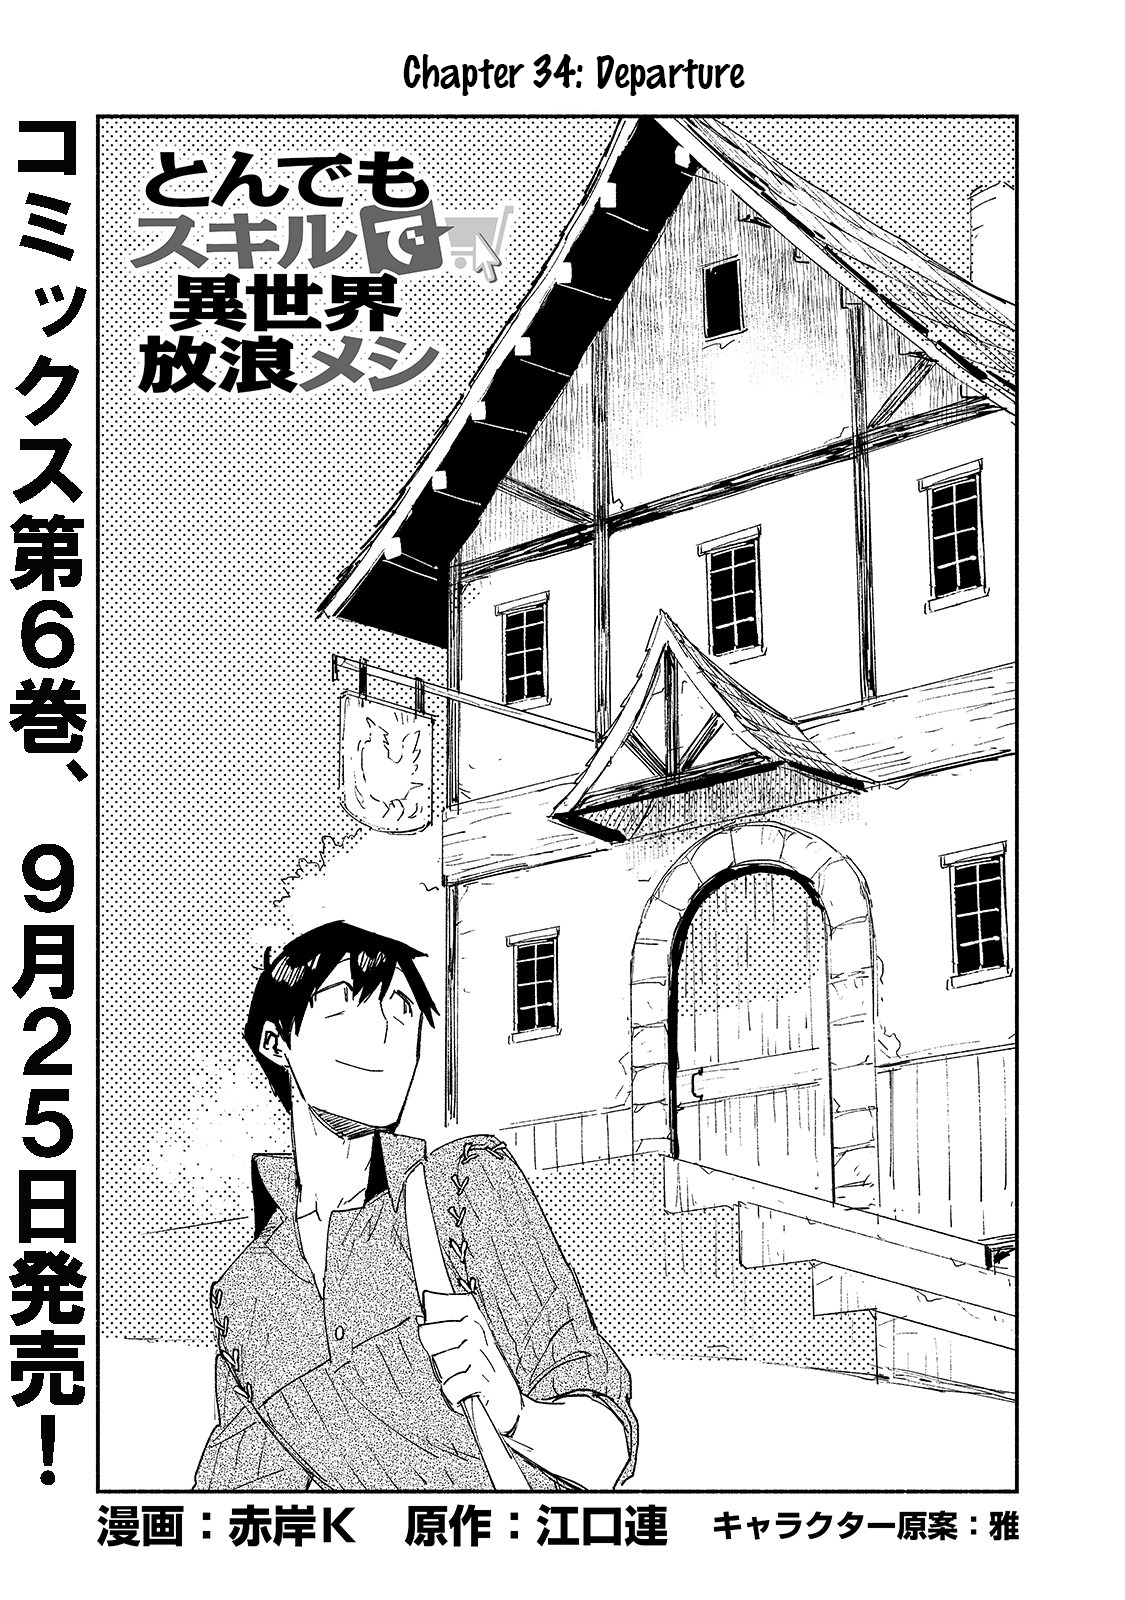 Manga Regarding the Display of an Outrageous Skill Which Has Incredible Powers - Chapter 34 Page 1